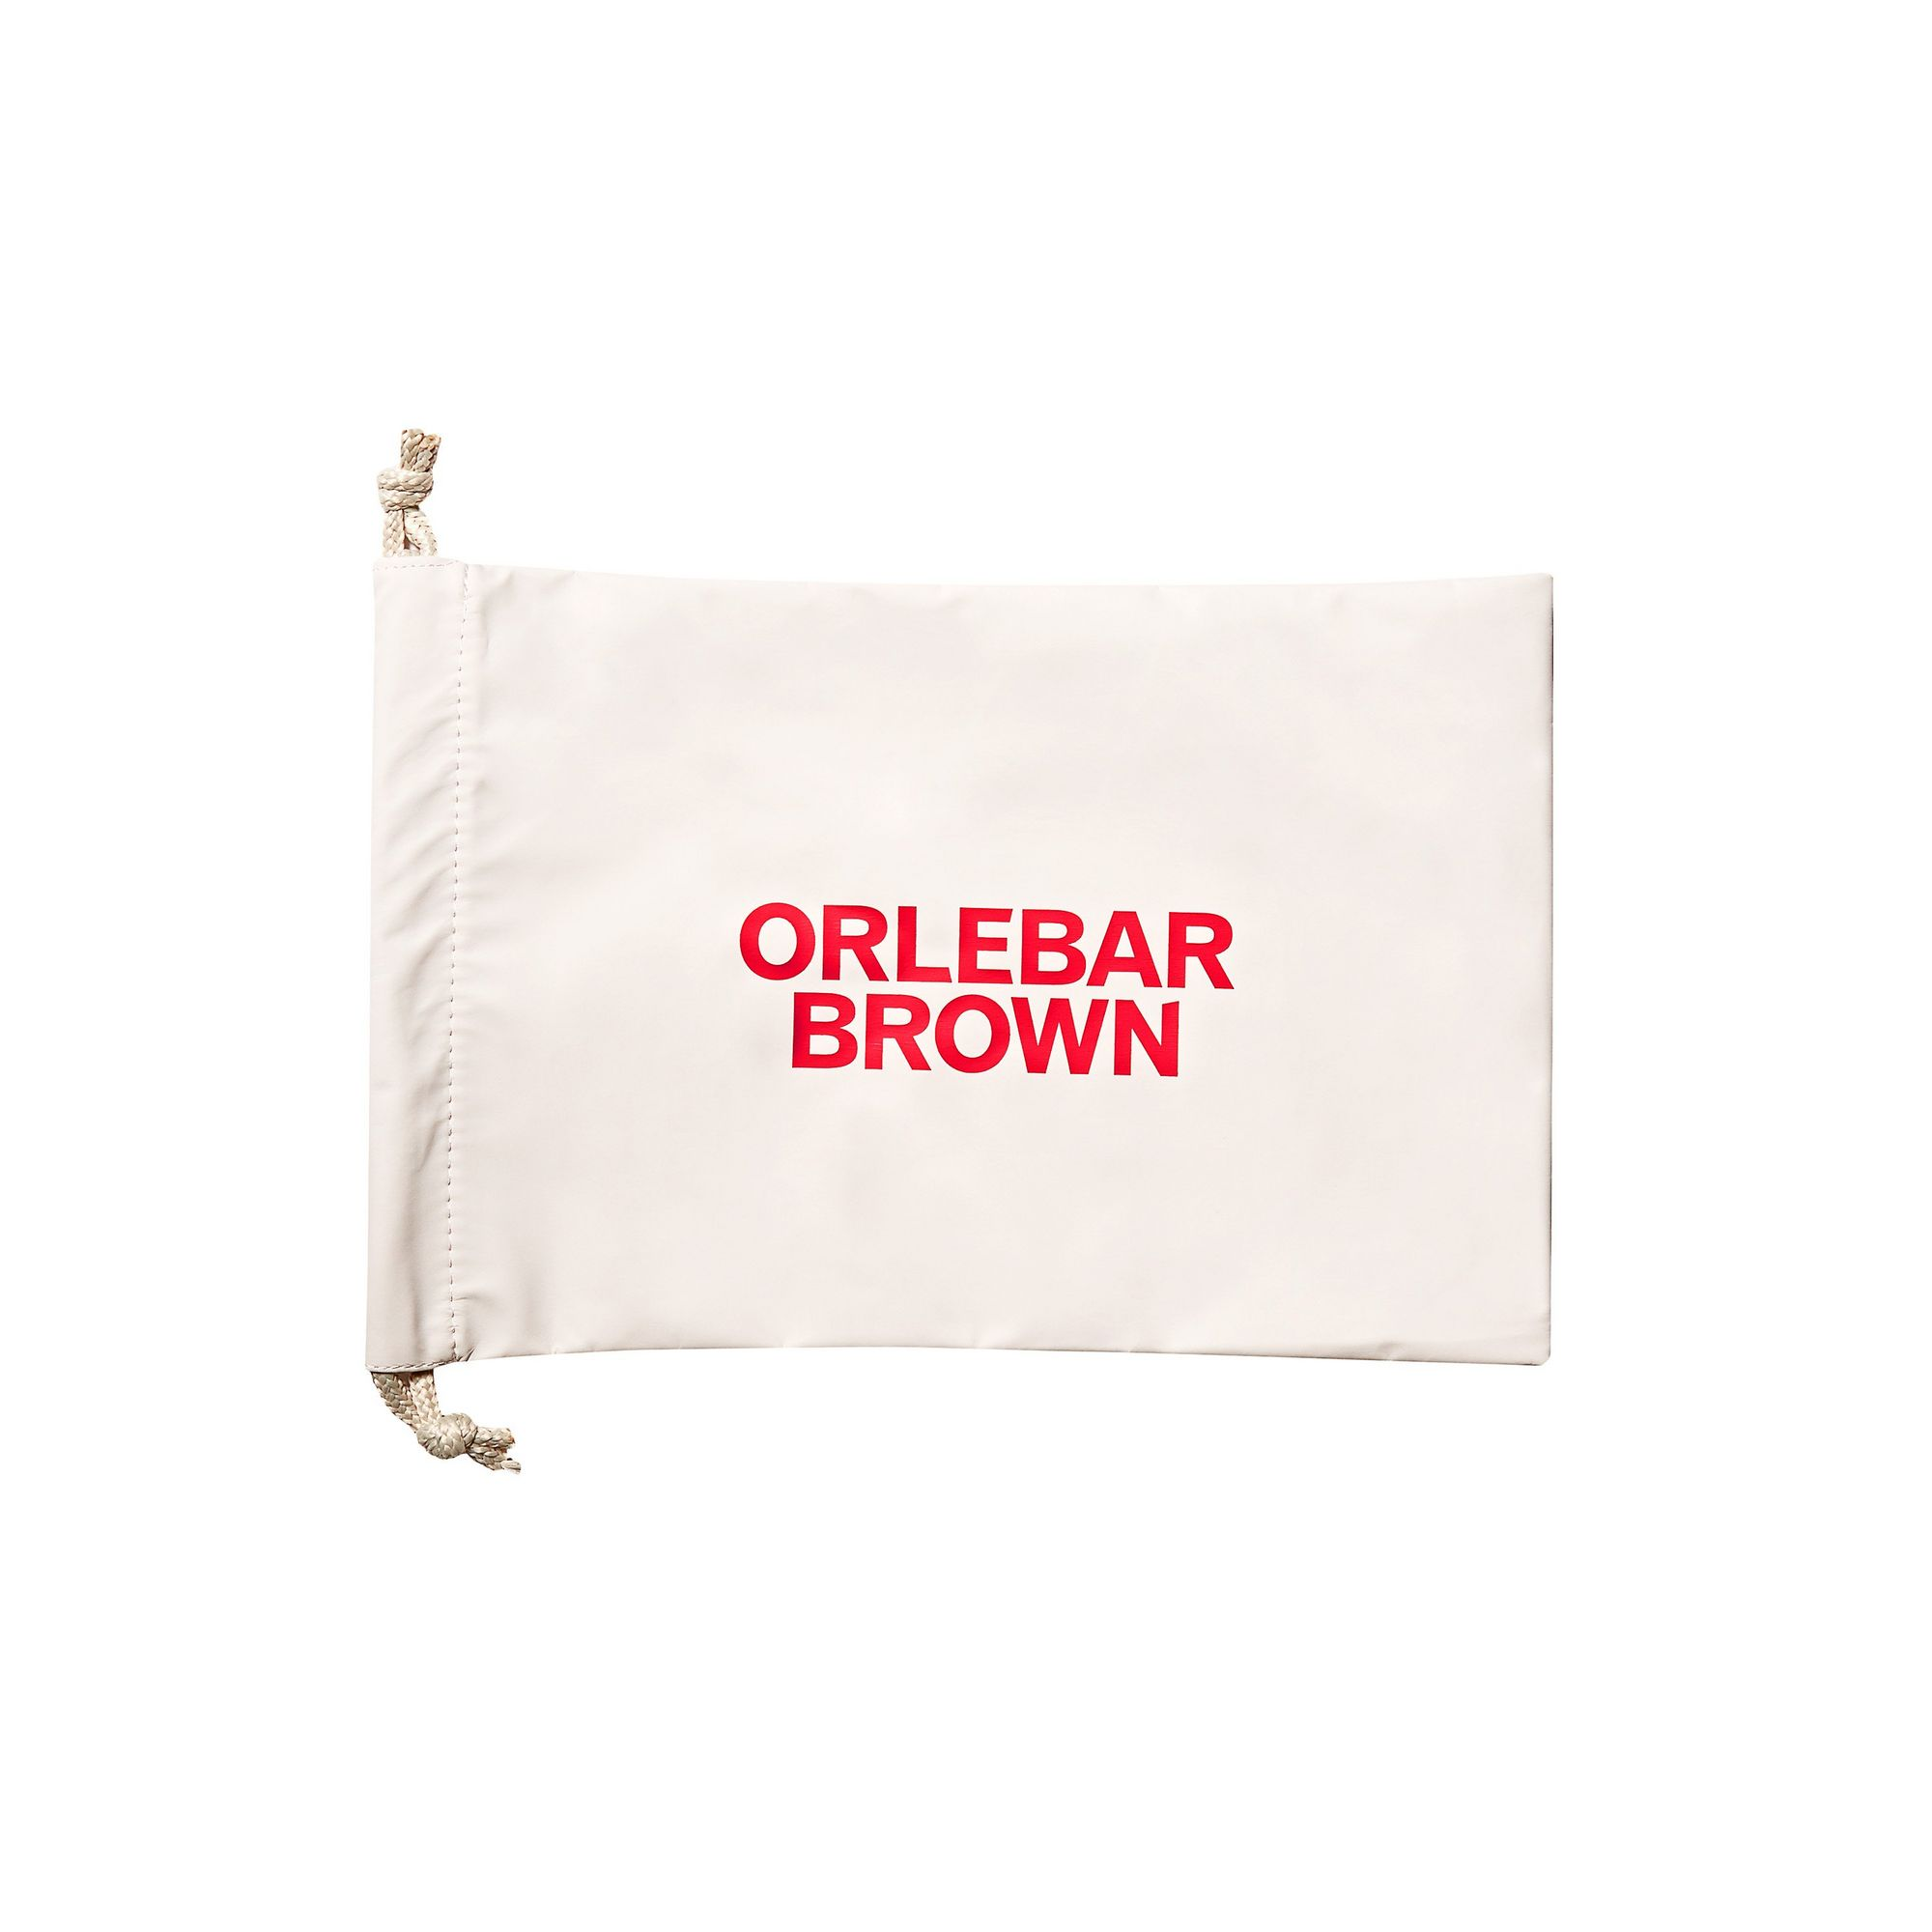 Orlebar Brown Bulldog